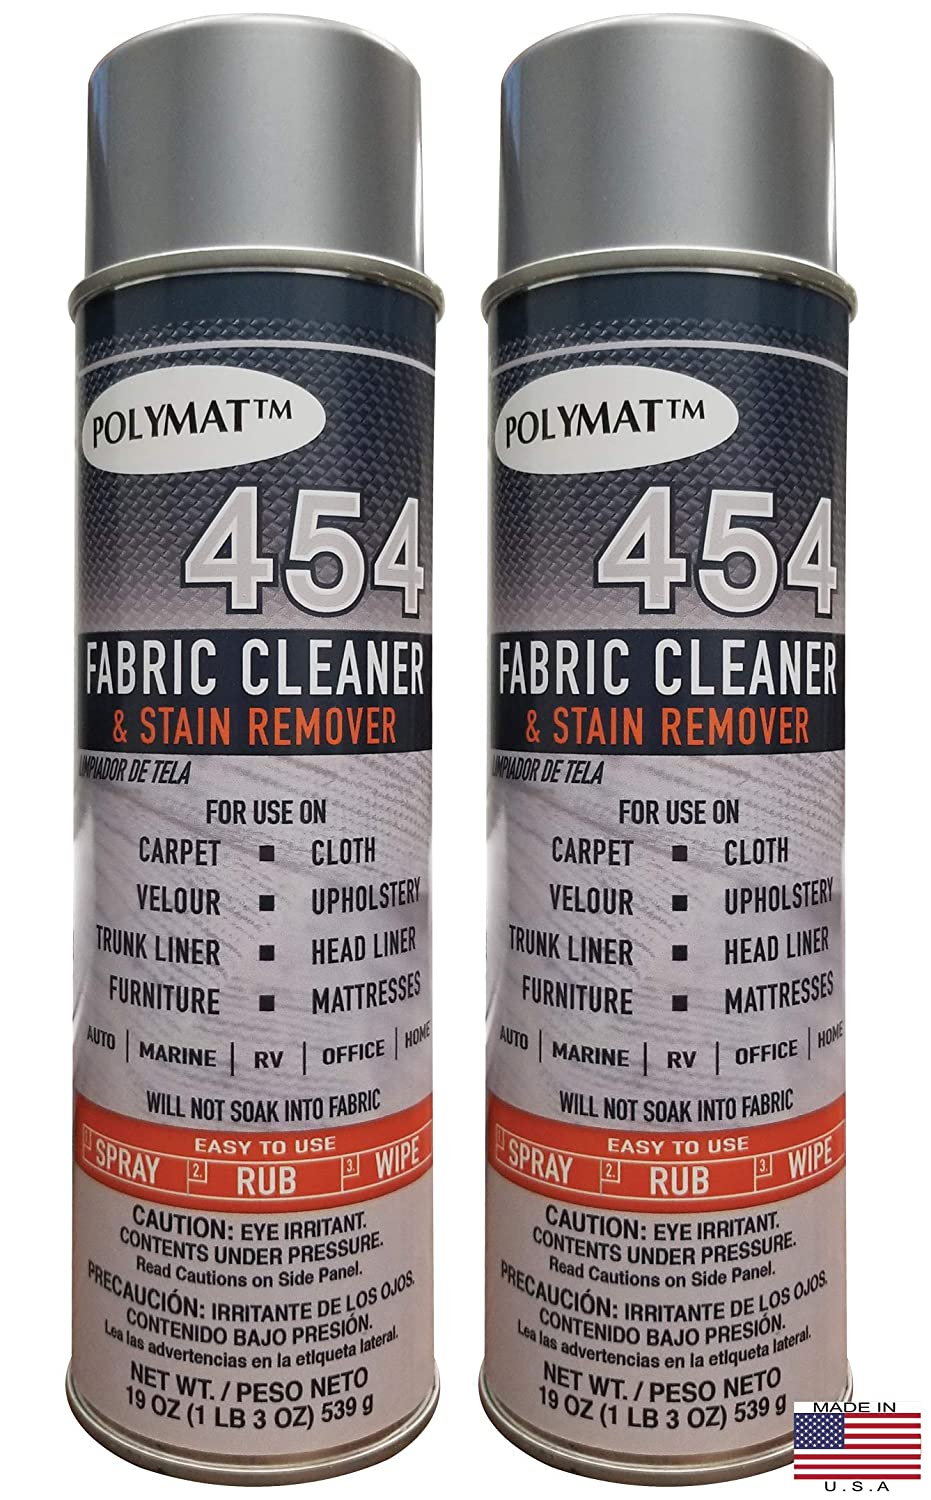 B07JKDCT9G Polymat QTY2 454 CAR Truck Boat Headliner and Fabric Cleaner & Stain Remover 813eNCZpdTL